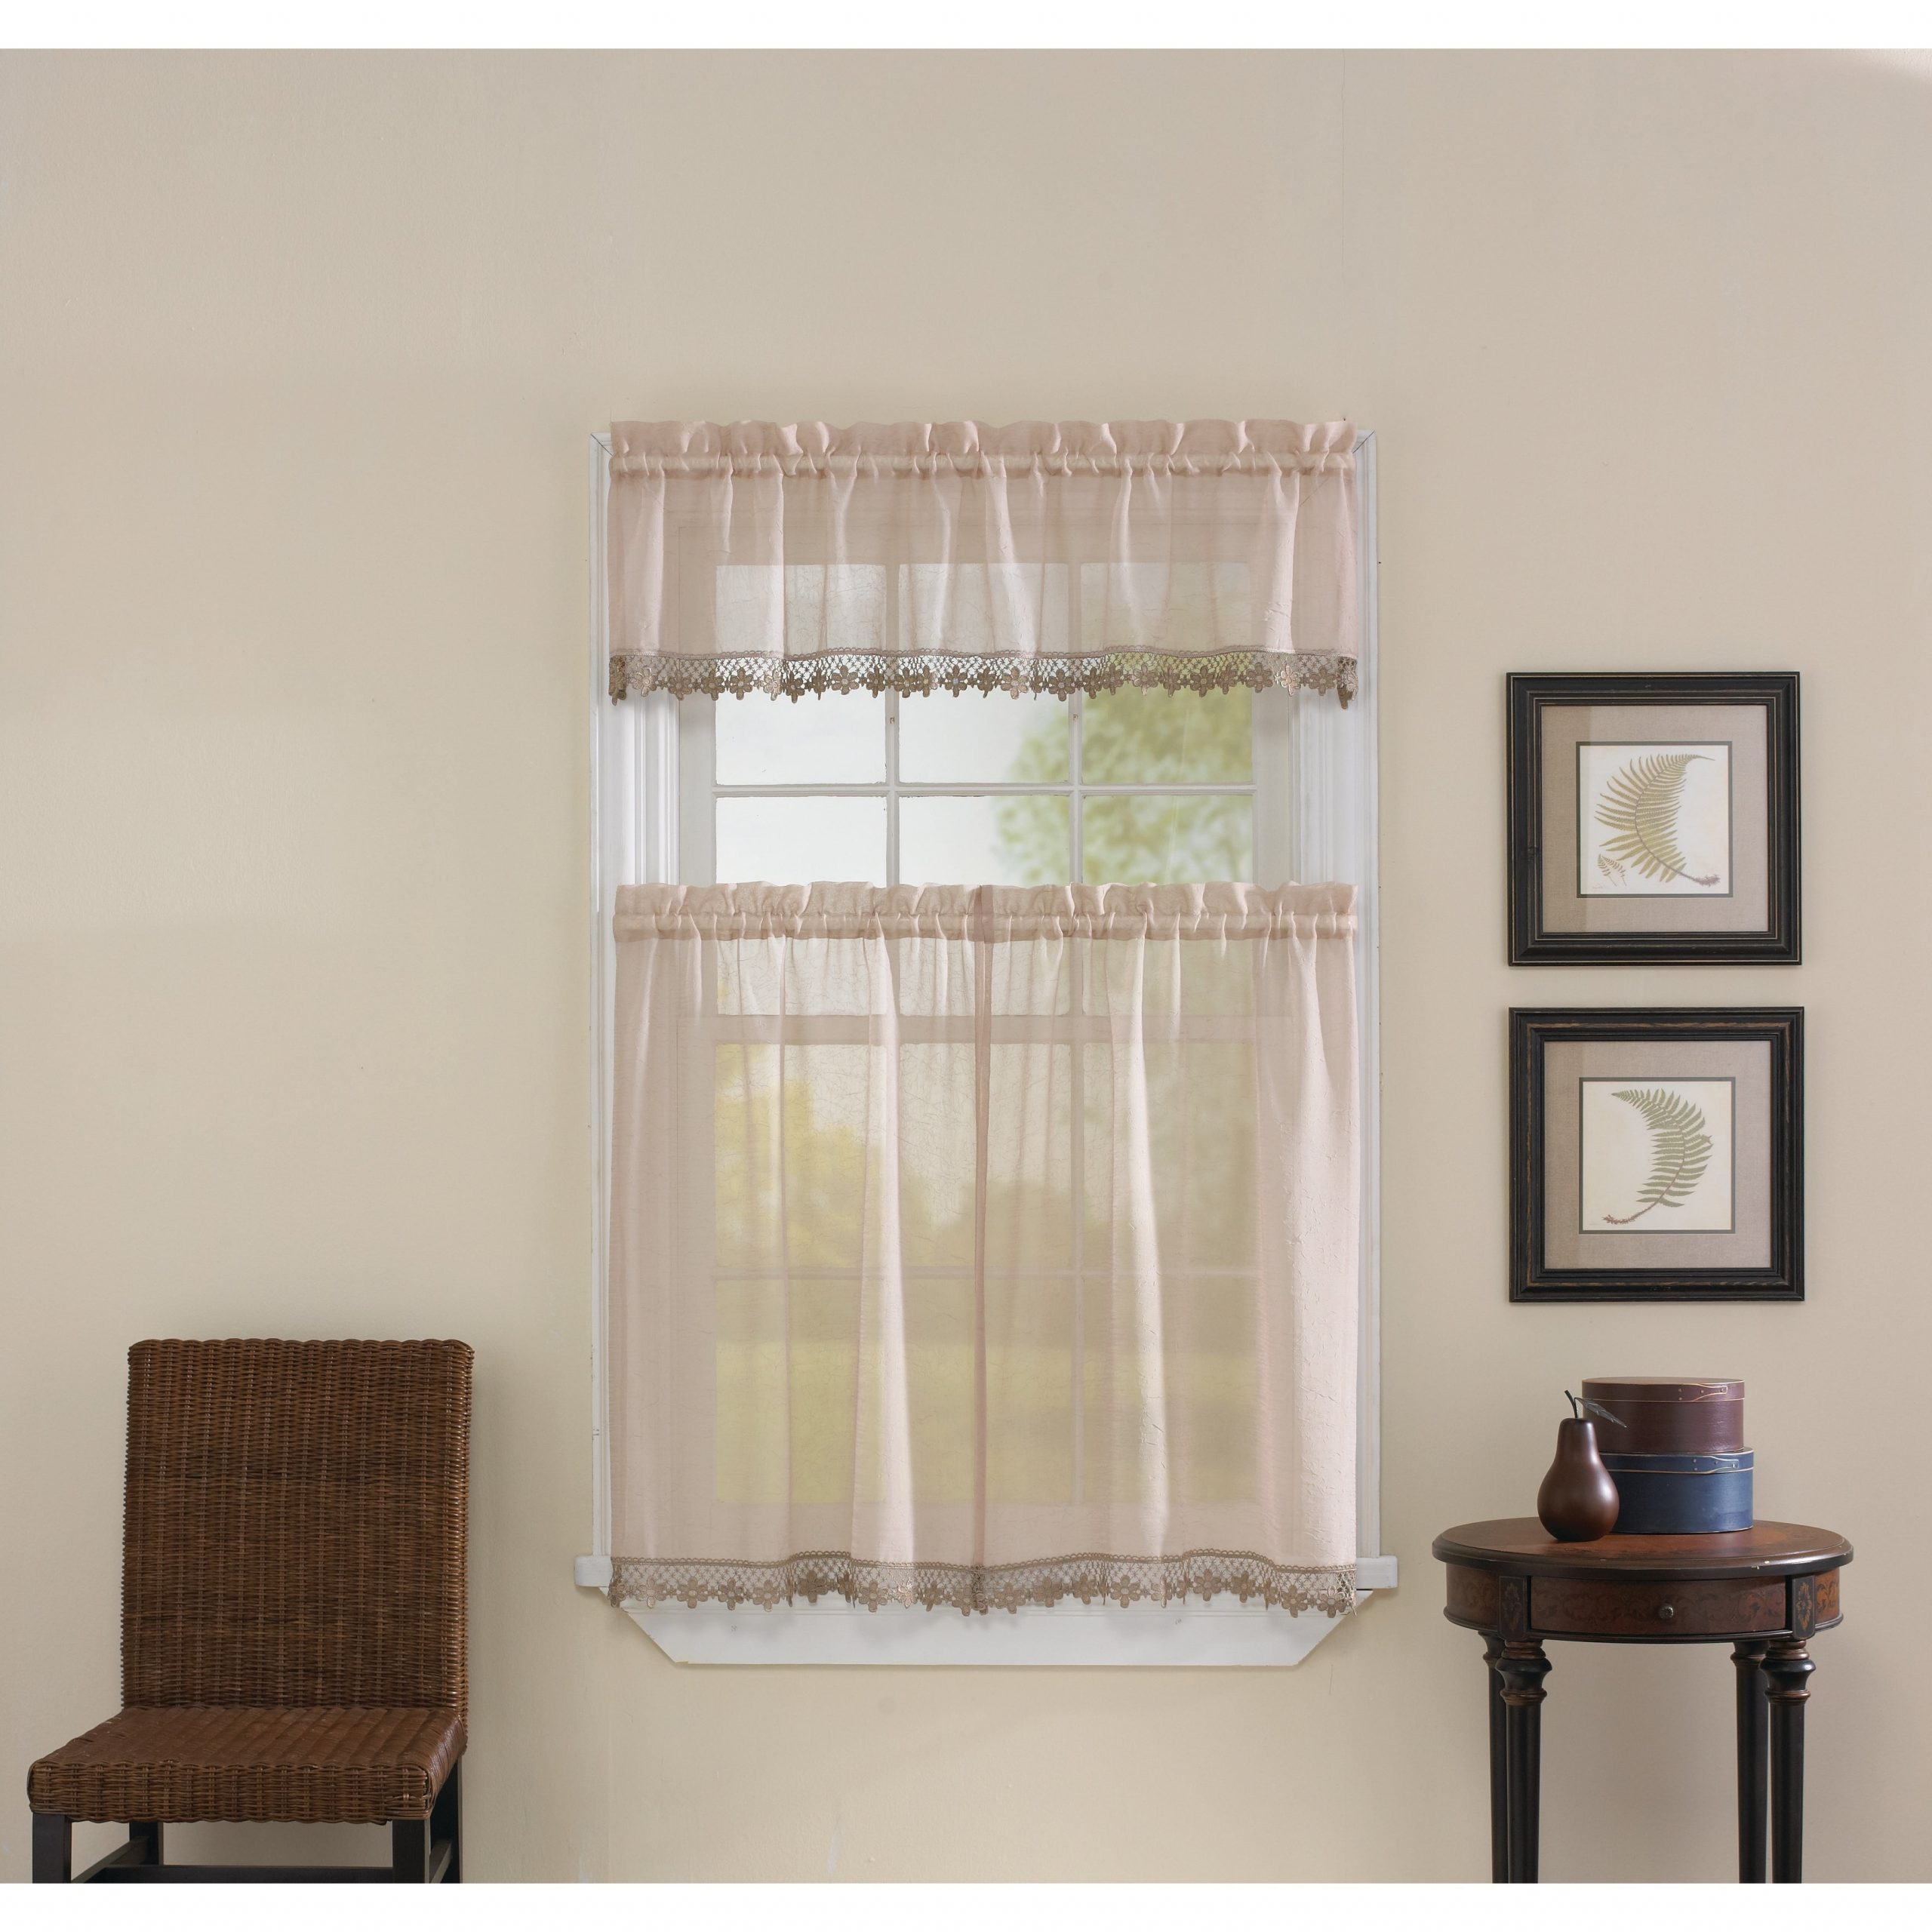 Best And Newest Leanne Tailored Valance And Tier Curtain Collection Regarding Tailored Valance And Tier Curtains (View 12 of 20)